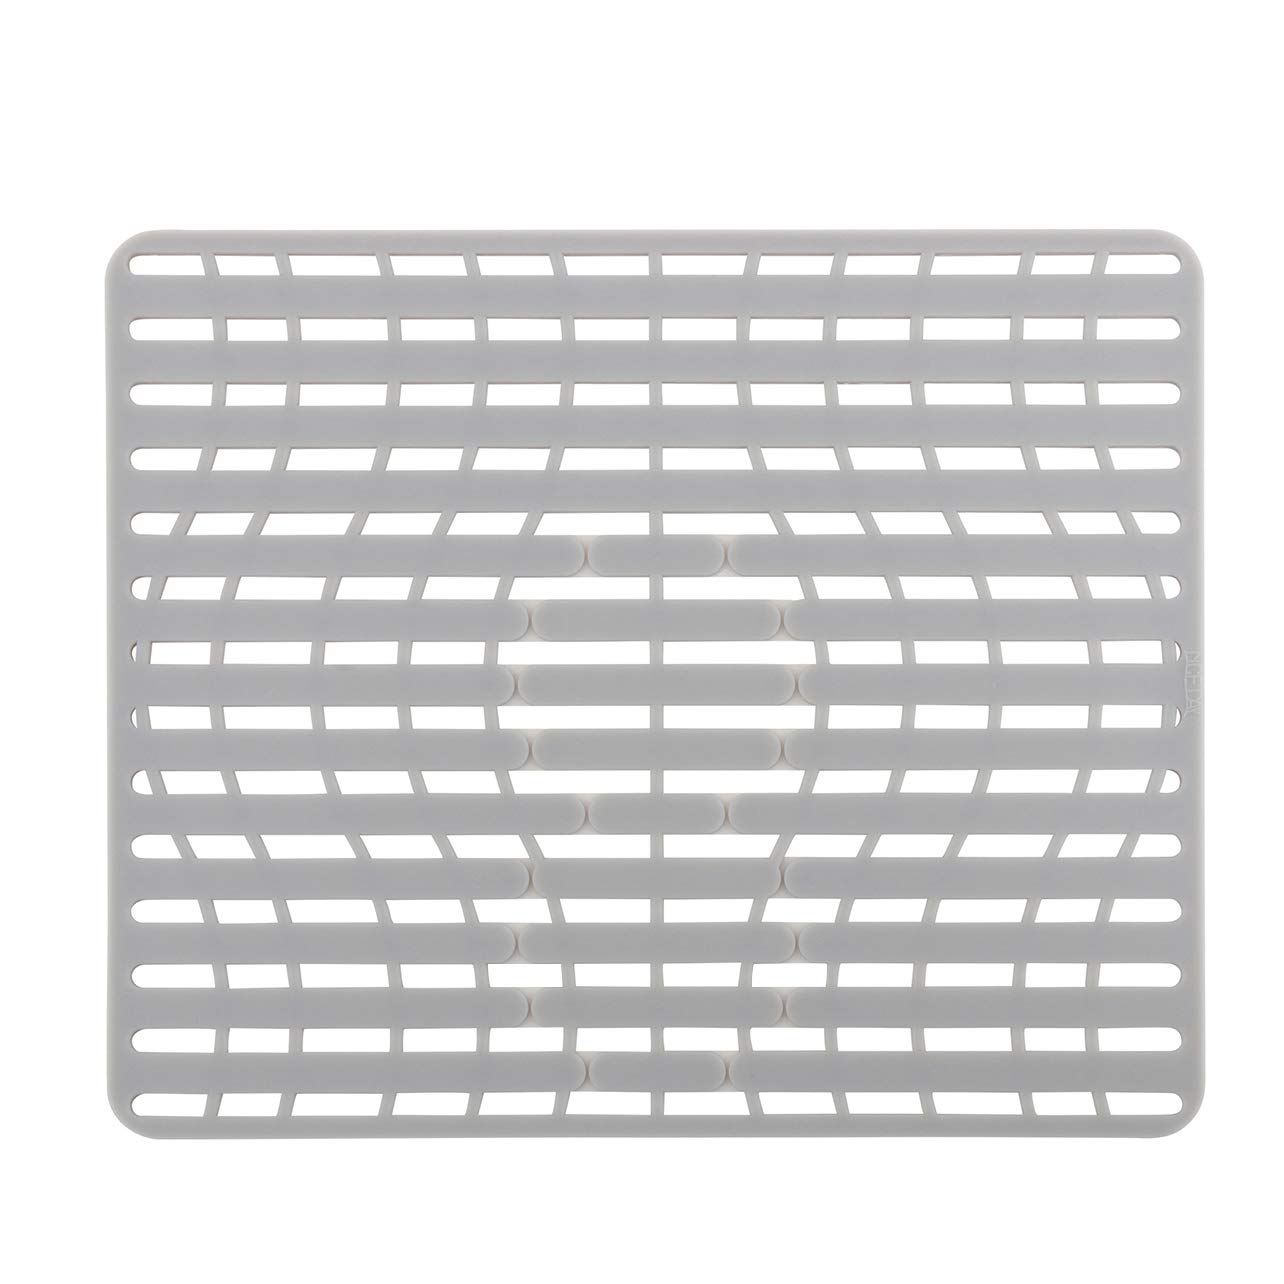 NICE DAY Sink Pad Sink Protector By Better Housewares Wok Stand Good Grips PVC Free Silicone Sink Mat, Large